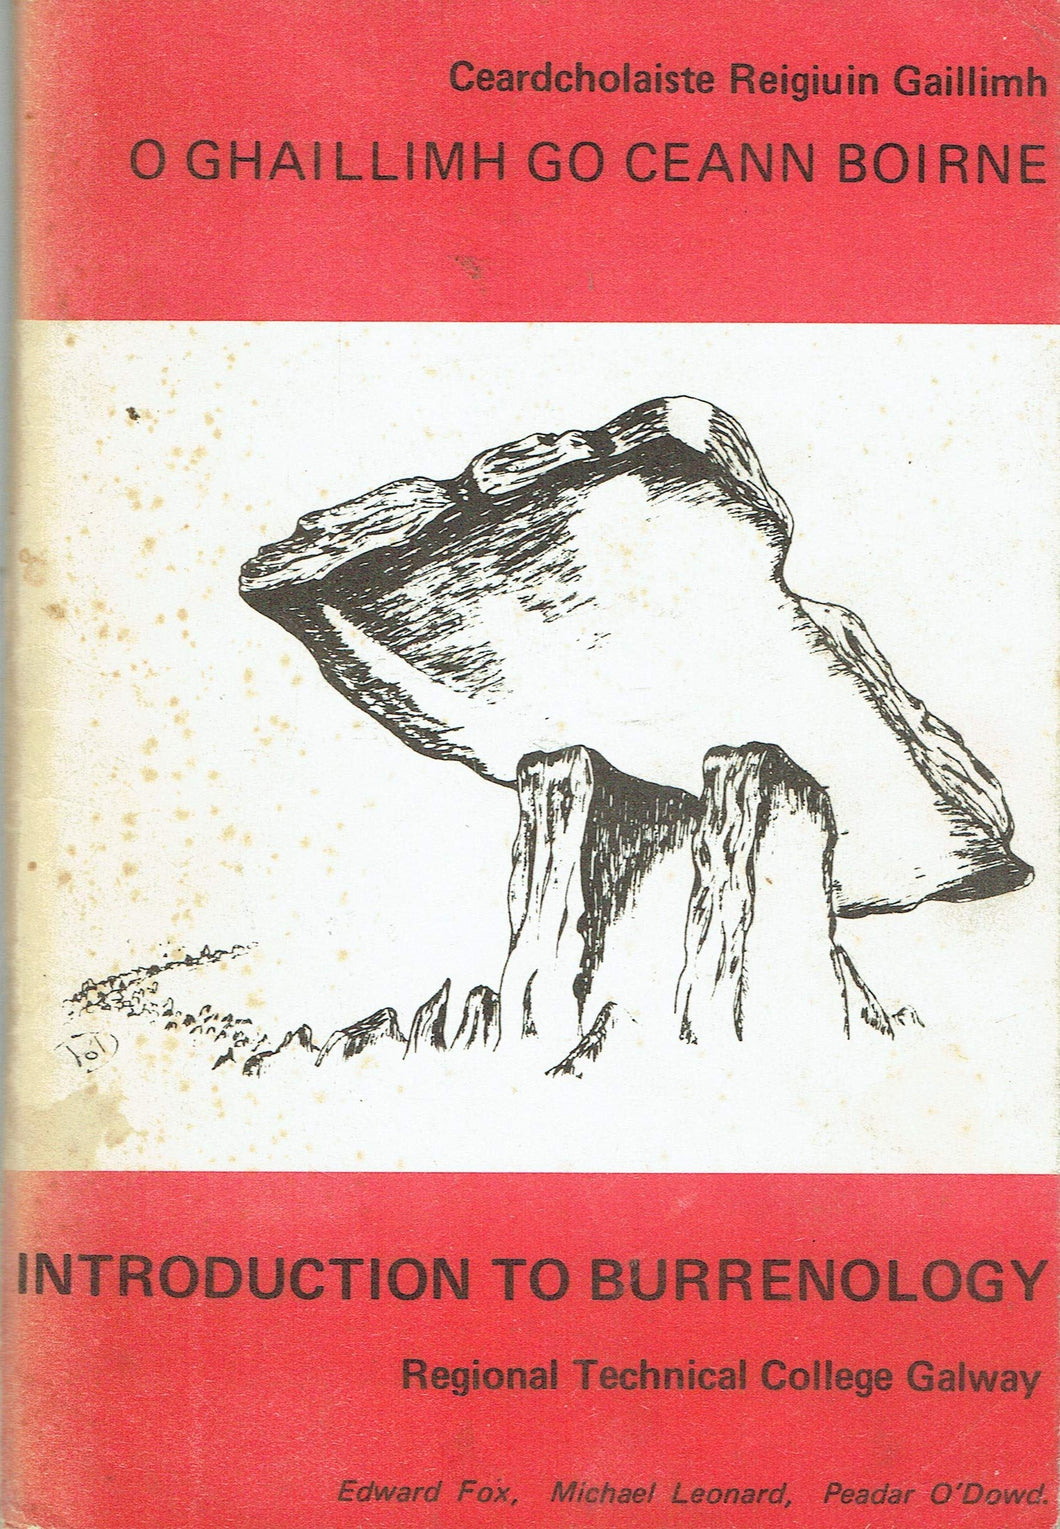 O Ghaillimh go Ceann Boirne - Introduction to Burrenology